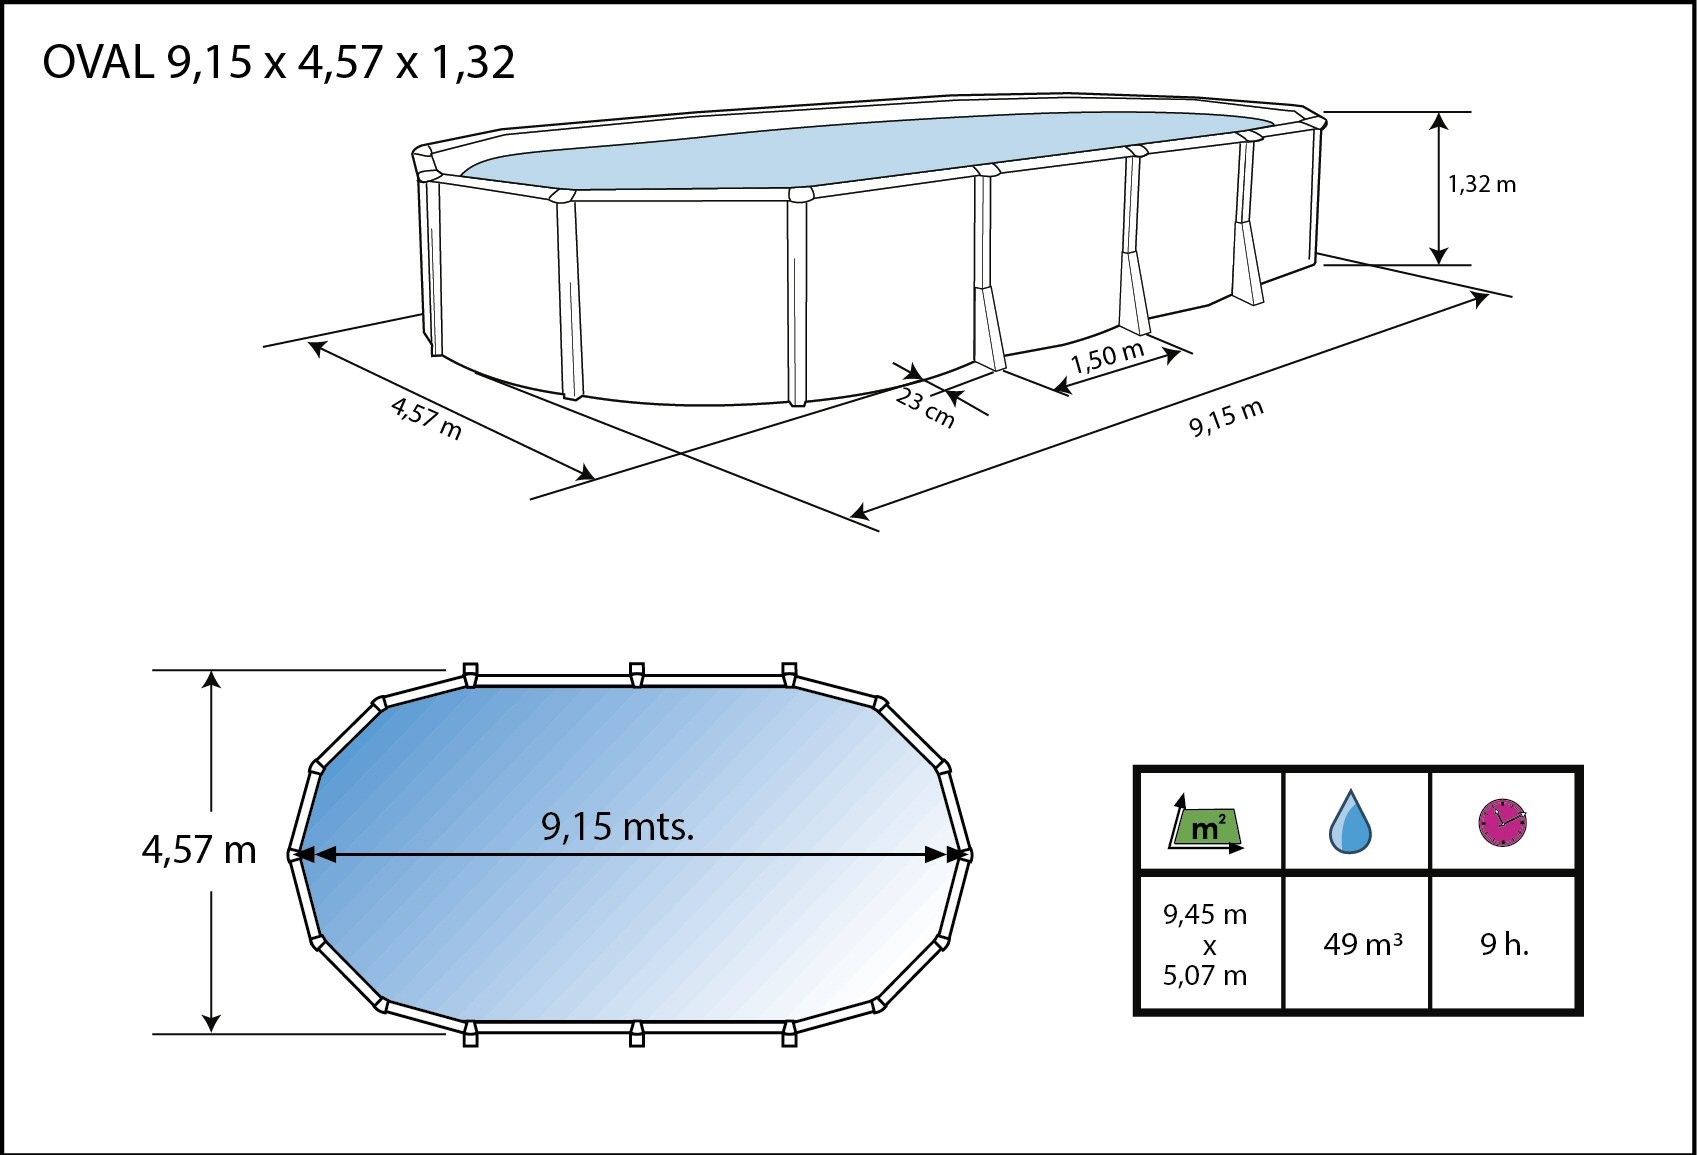 Buttress Free Oval Pool - 5.50m x 3.66m x 1.32m